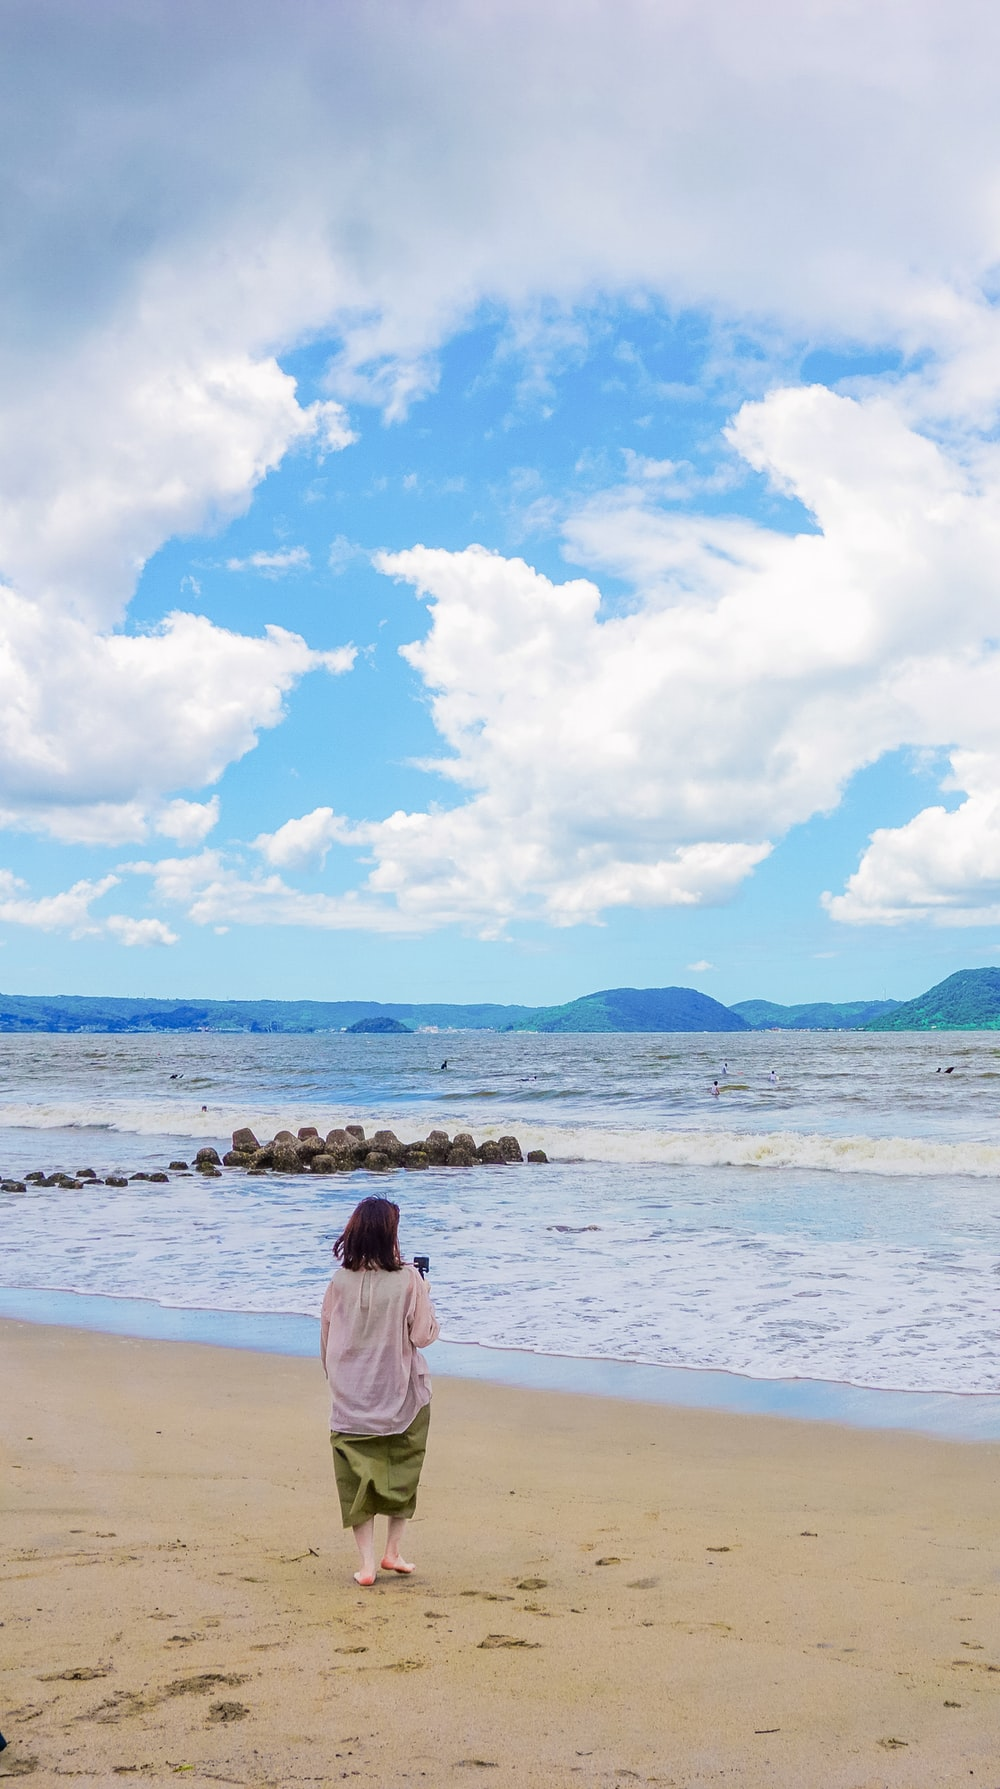 woman in pink dress sitting on white sand near body of water during daytime